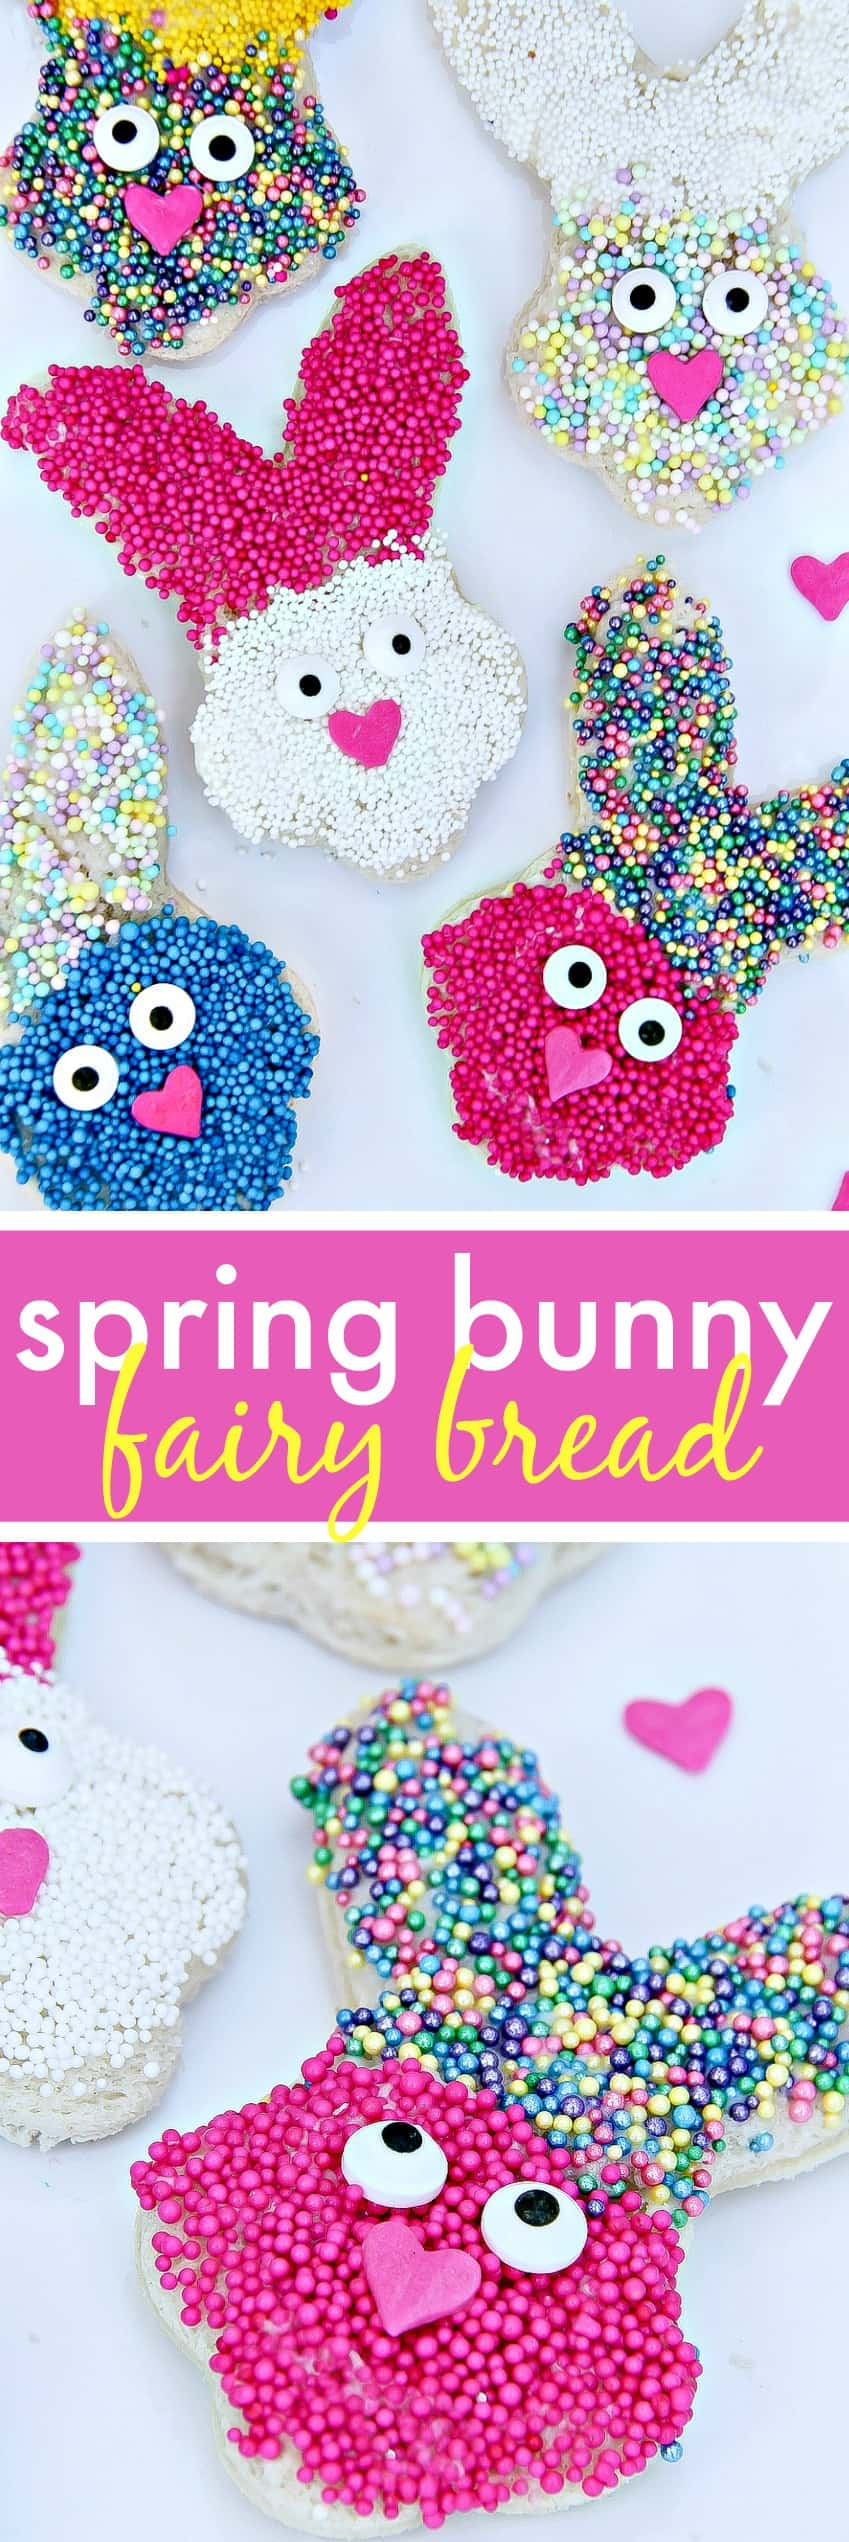 How to make spring bunny fairy bread treats for kids